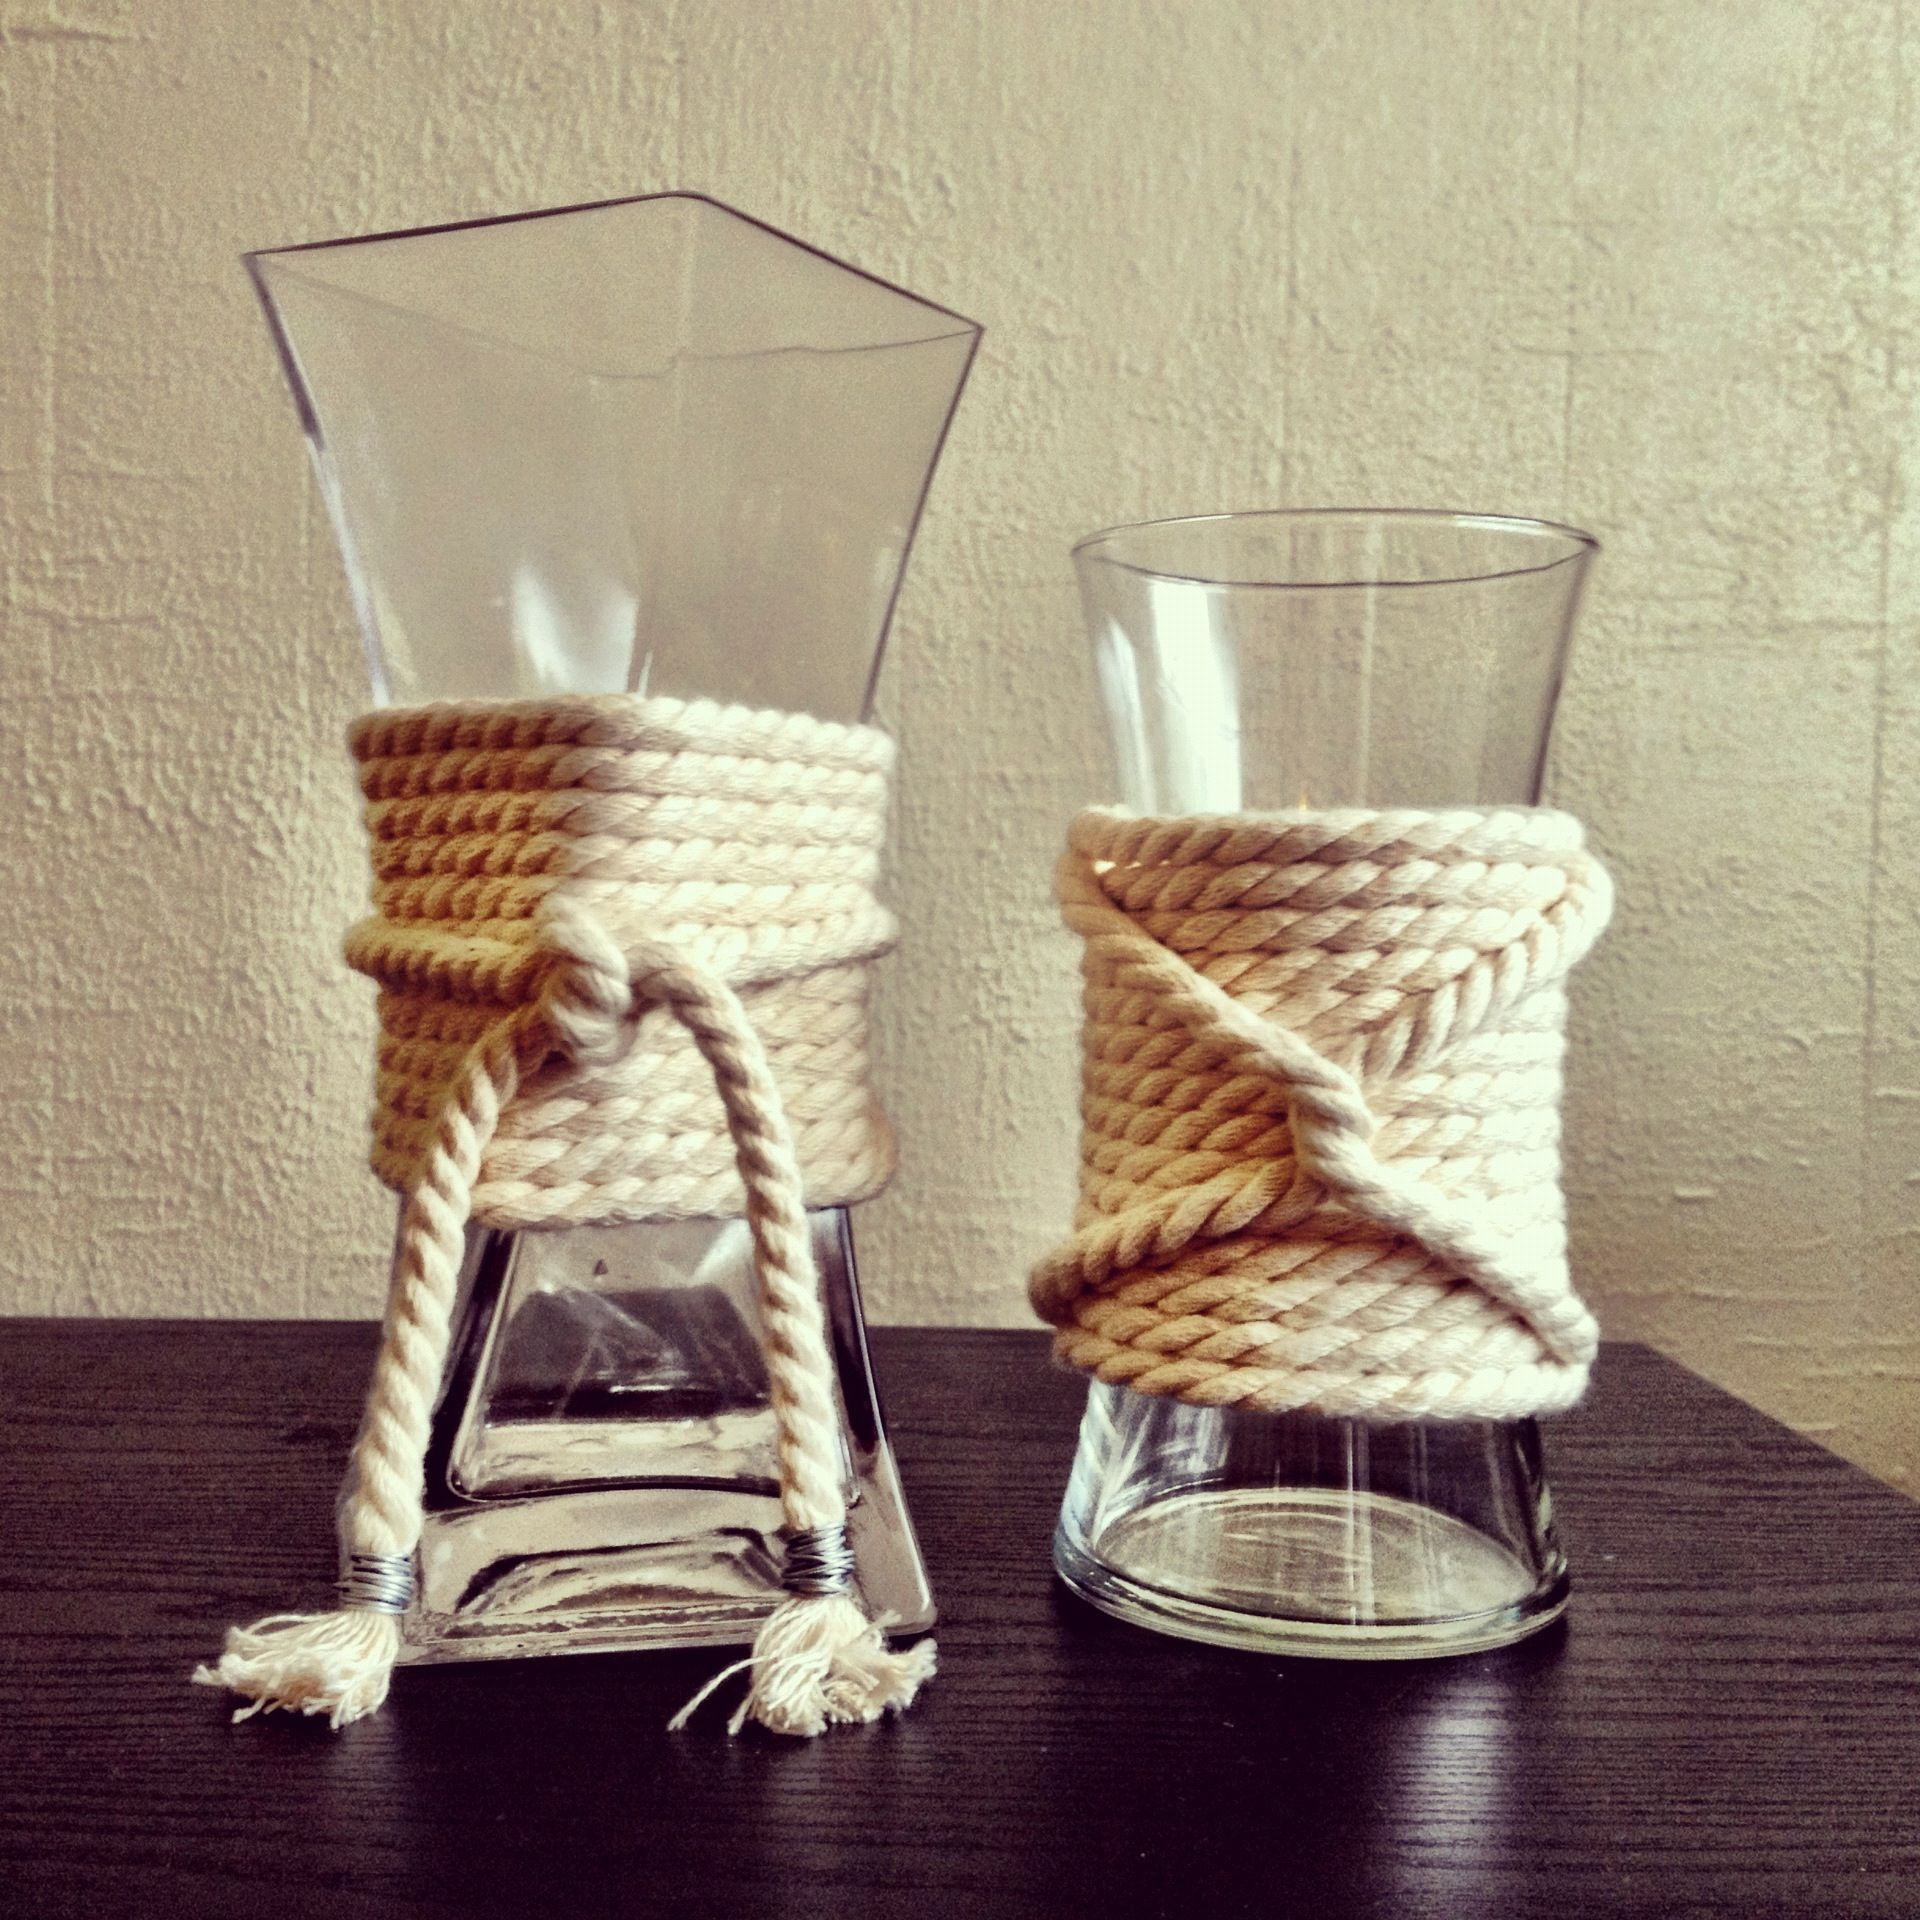 Nautical Decor Centerpieces: Nautical Rope Vases. Rope Warapped Candles?